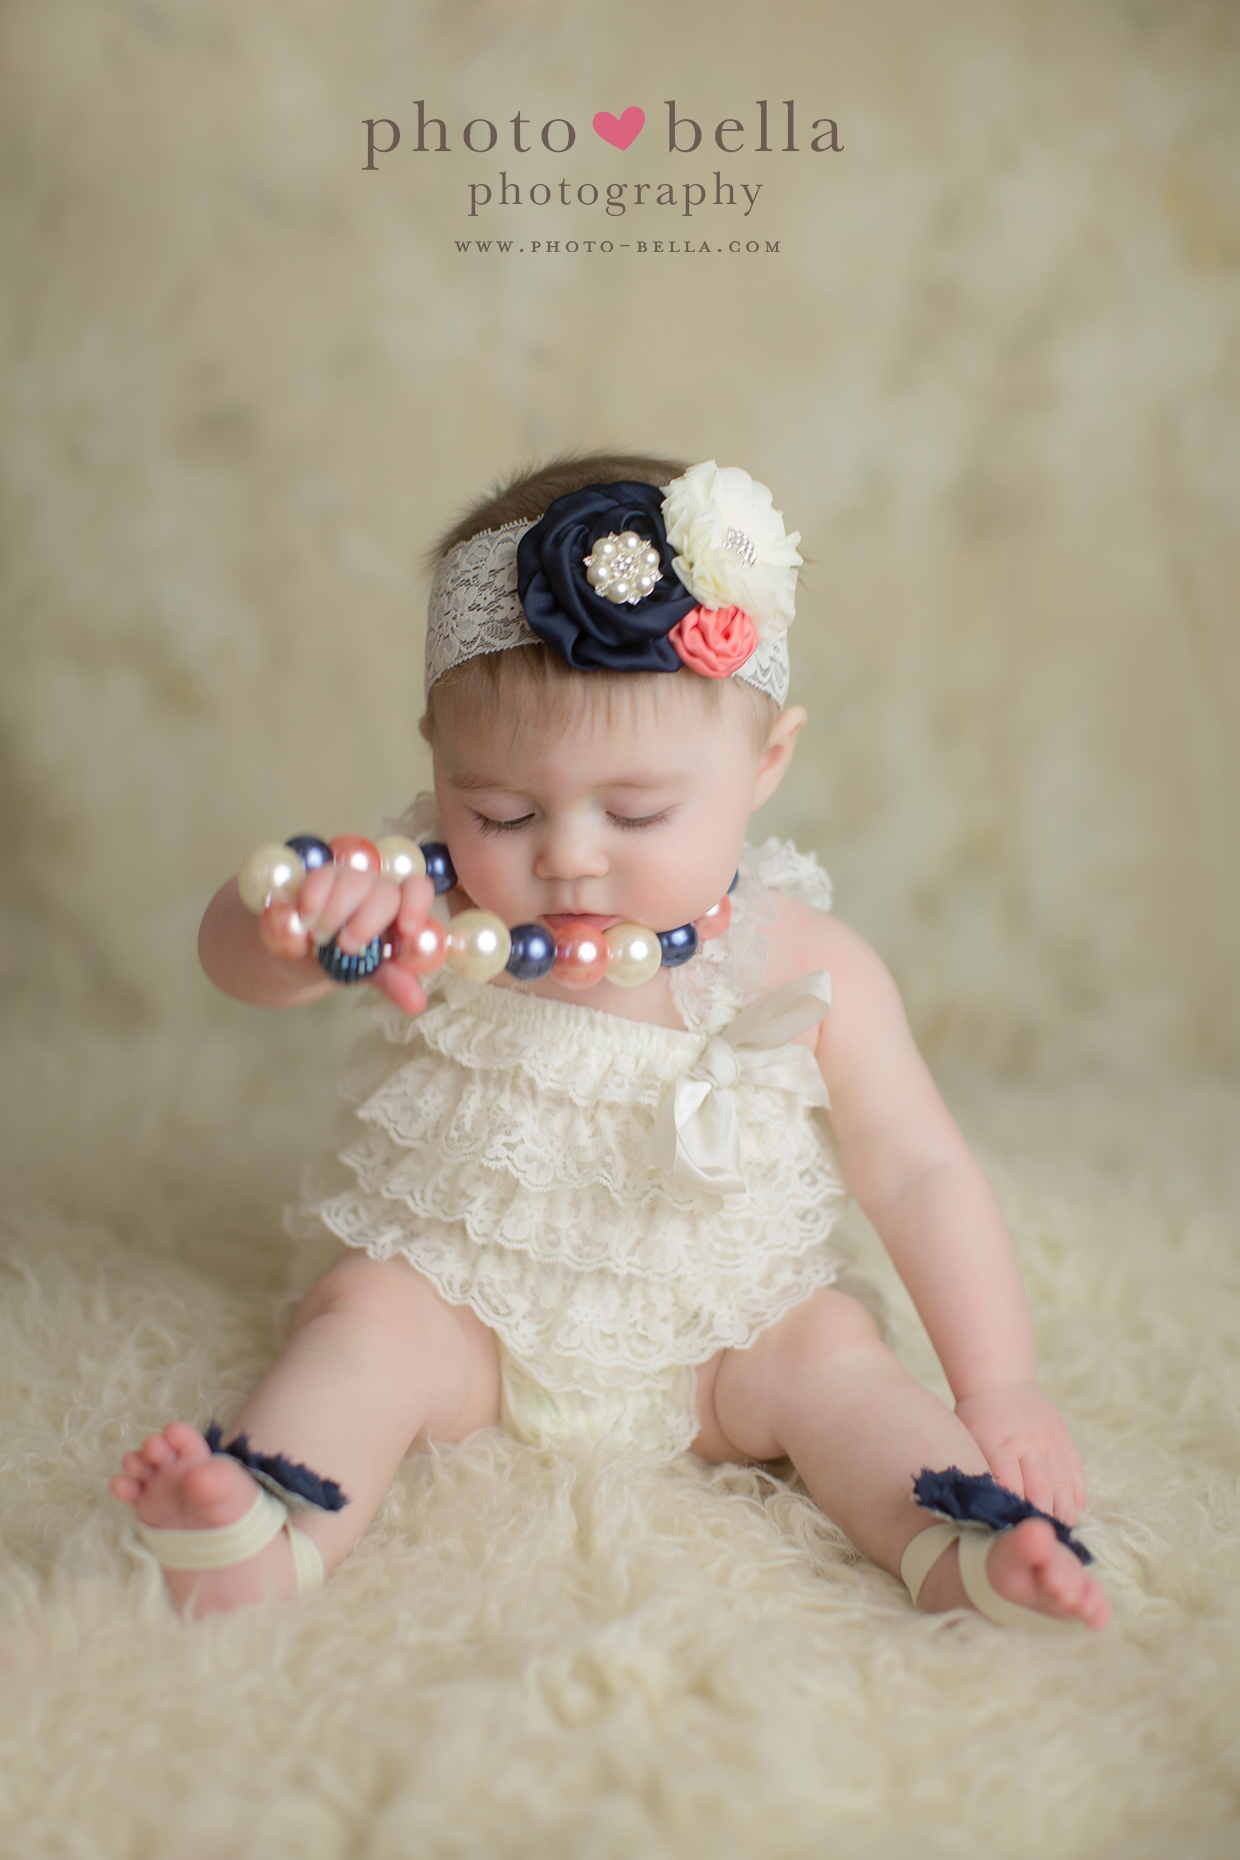 photo of six month old baby playing with necklace